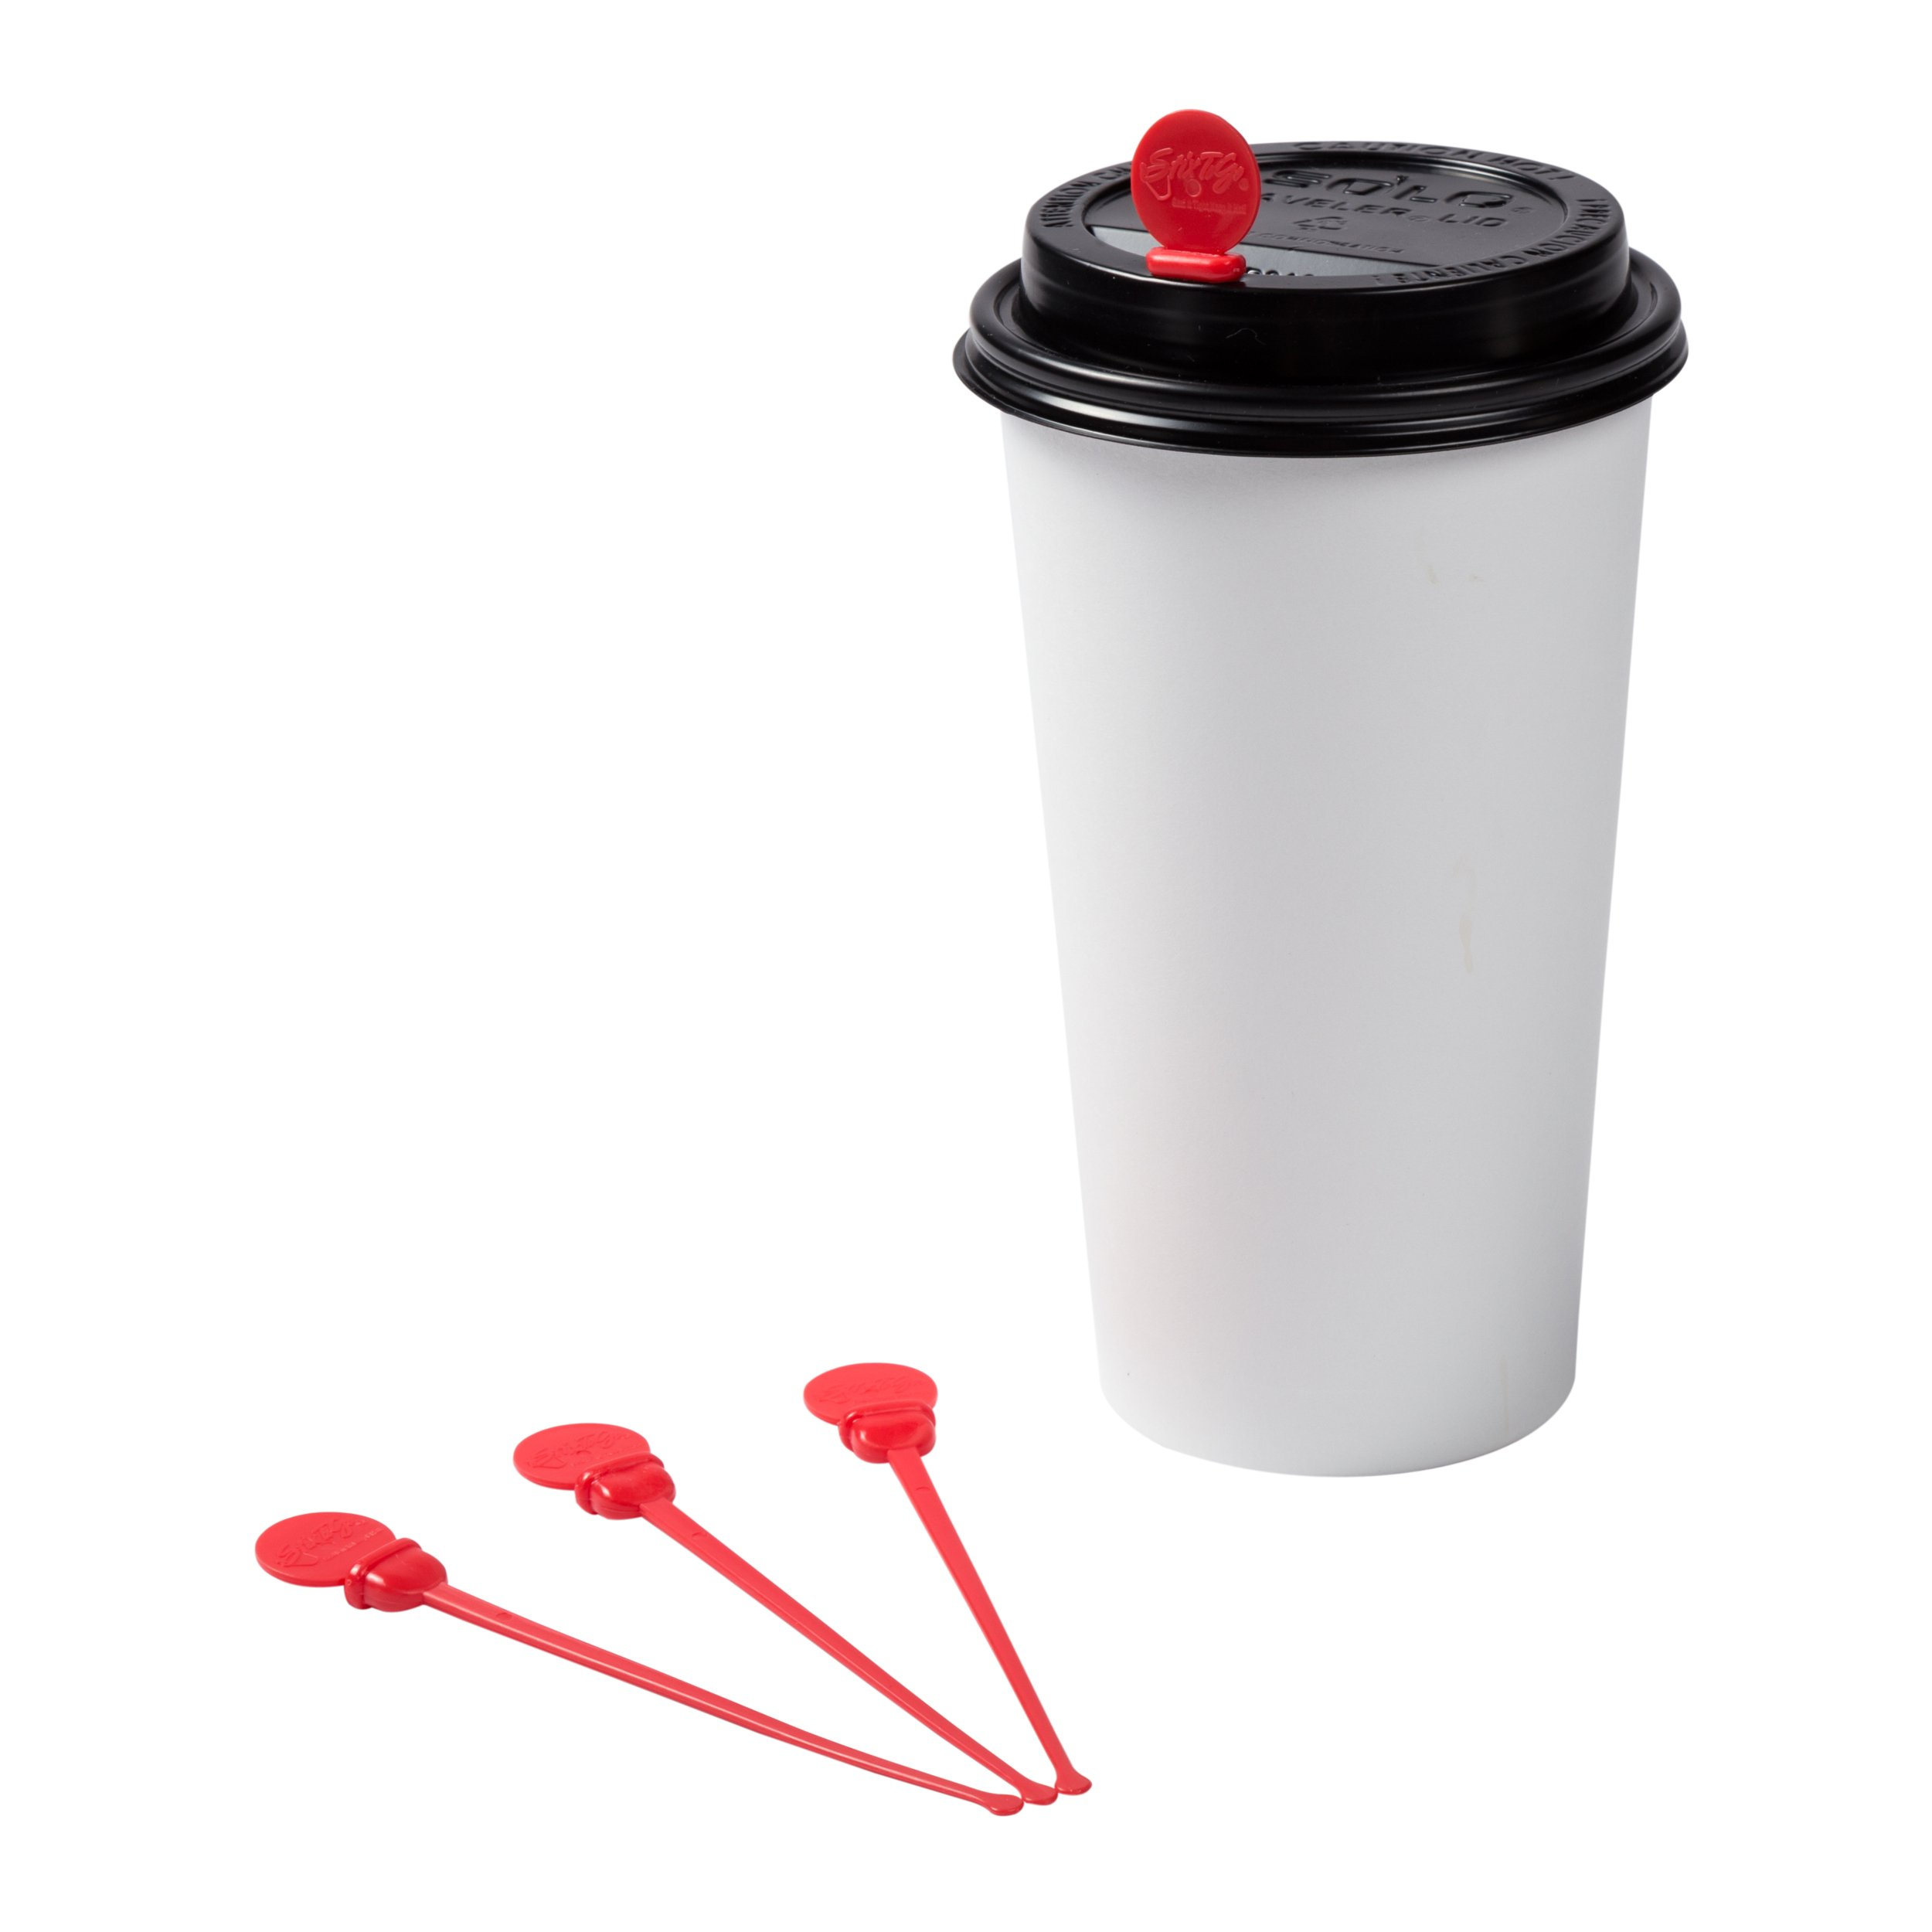 StixToGo 4.75'' Red Stir N Plug Stix for Disposable Lids, Case of 2000 by Royal (Image #3)